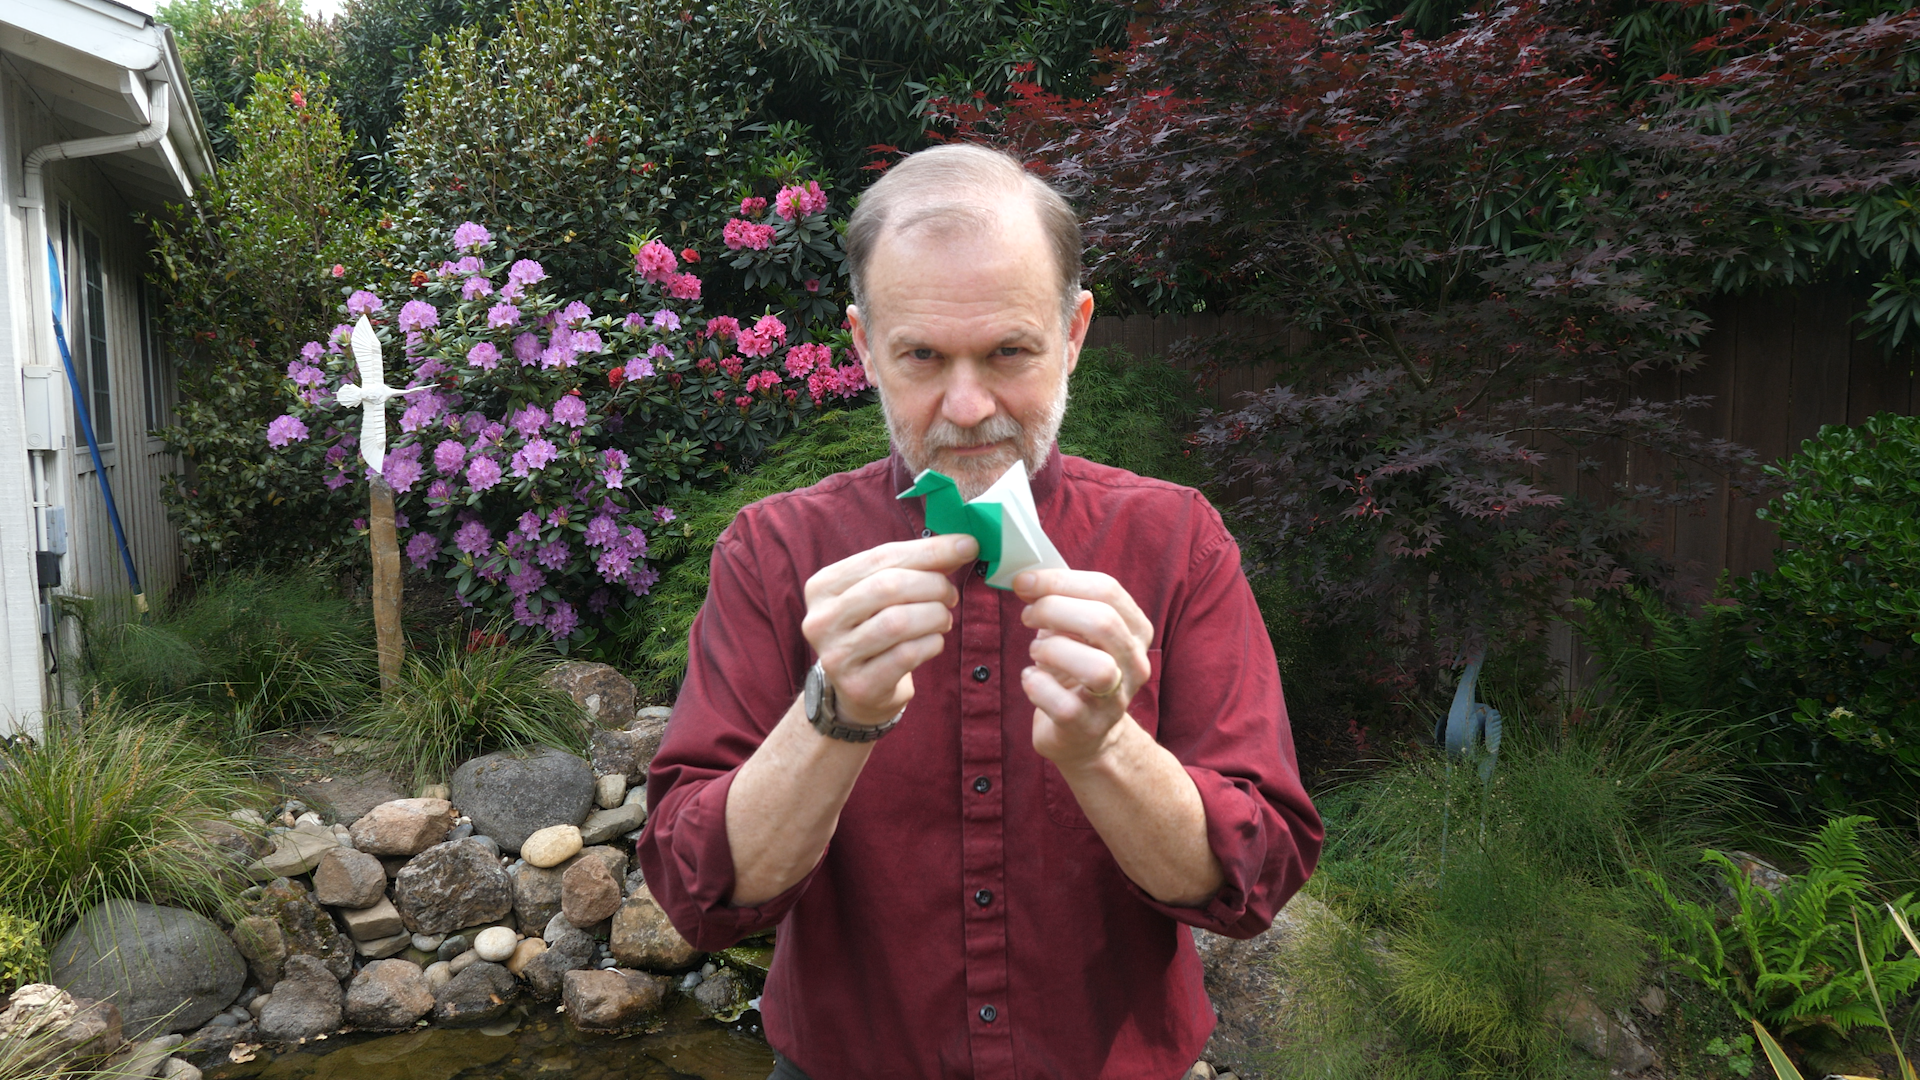 Robert J. Lang: Know How To Fold 'Em - Former NASA physicist Robert J. Lang finds a natural fit for his mathematical mind in the ancient art of origami.Season 4, Episode 3